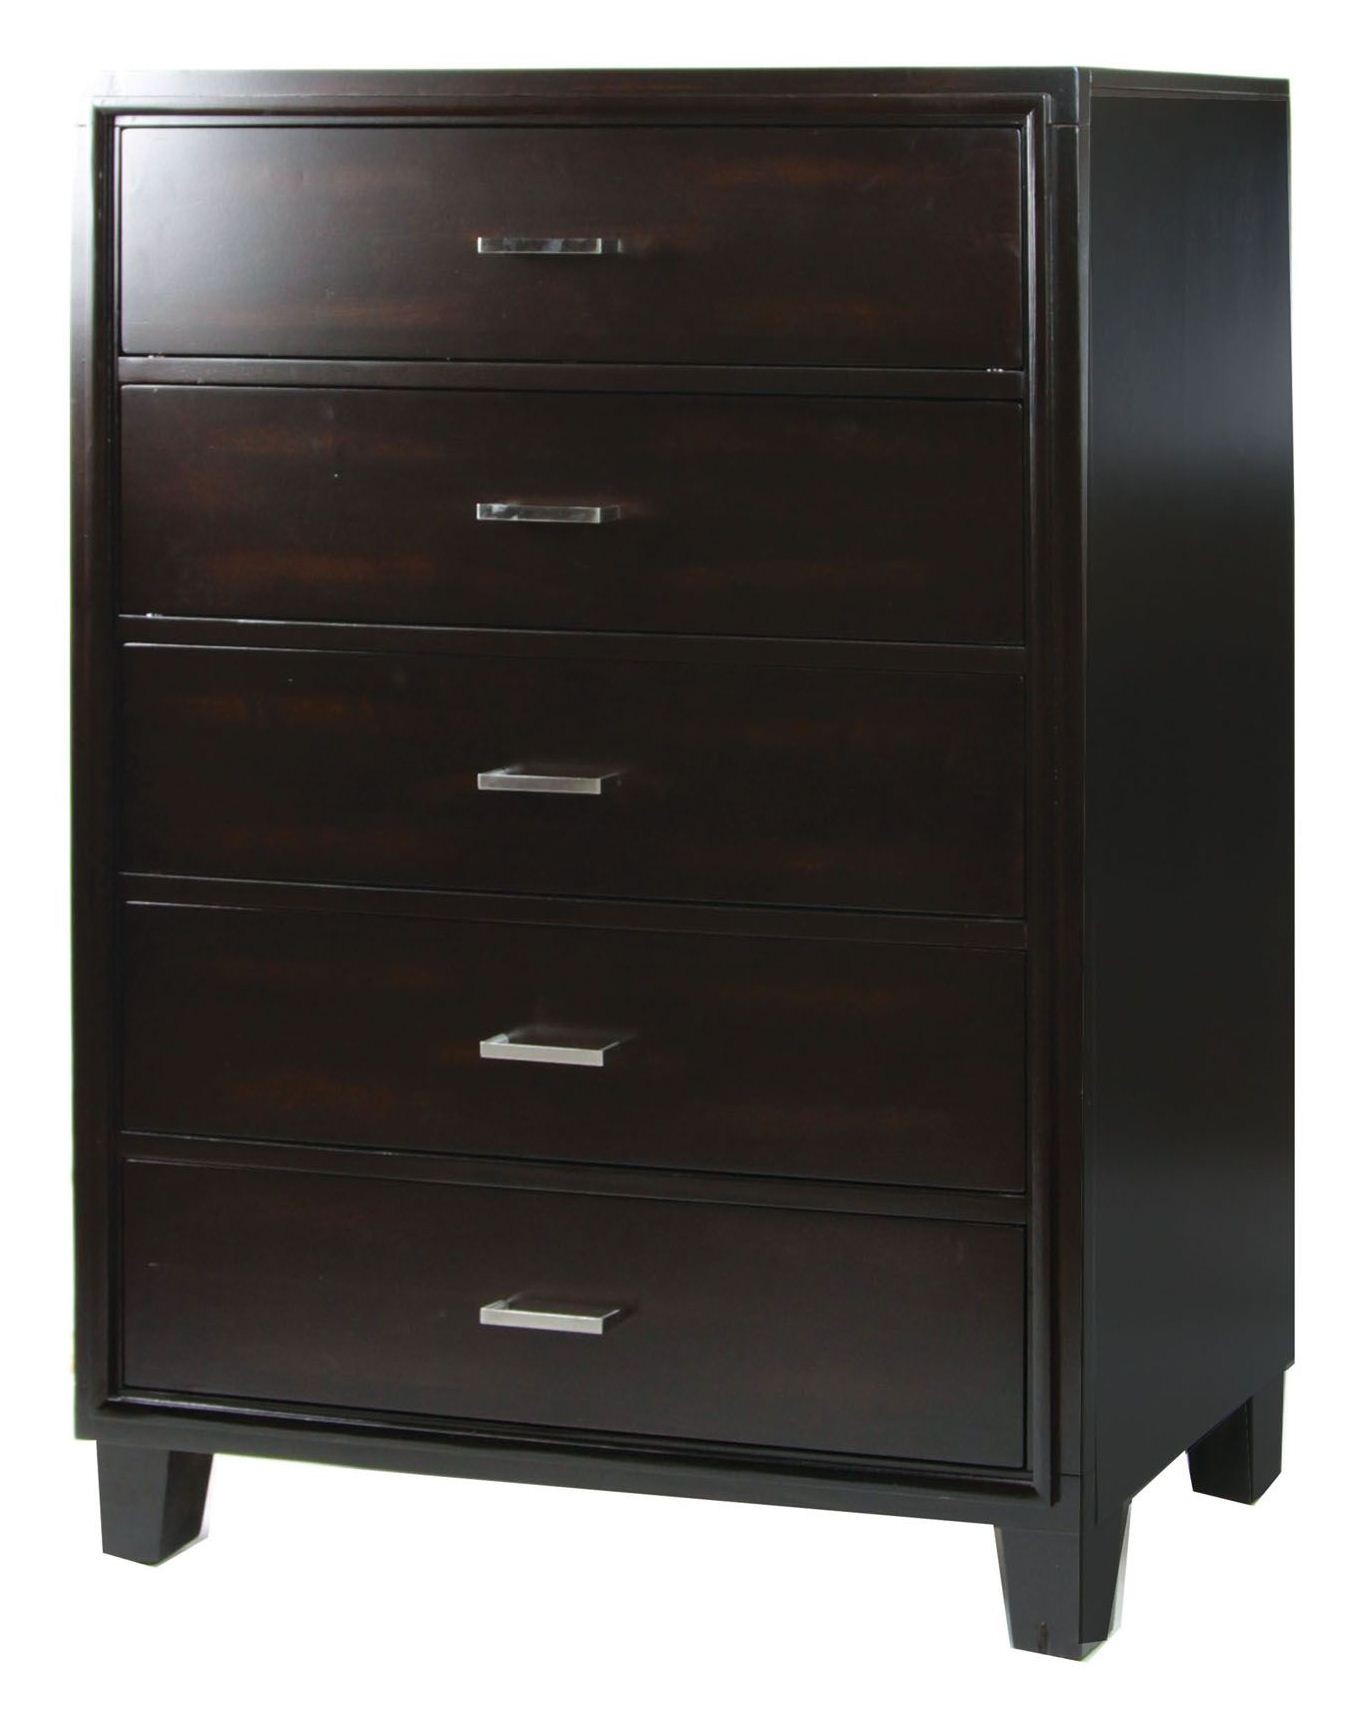 Gerico I Dark Espresso Bedroom Set from Furniture of America CM7290EX Q BED